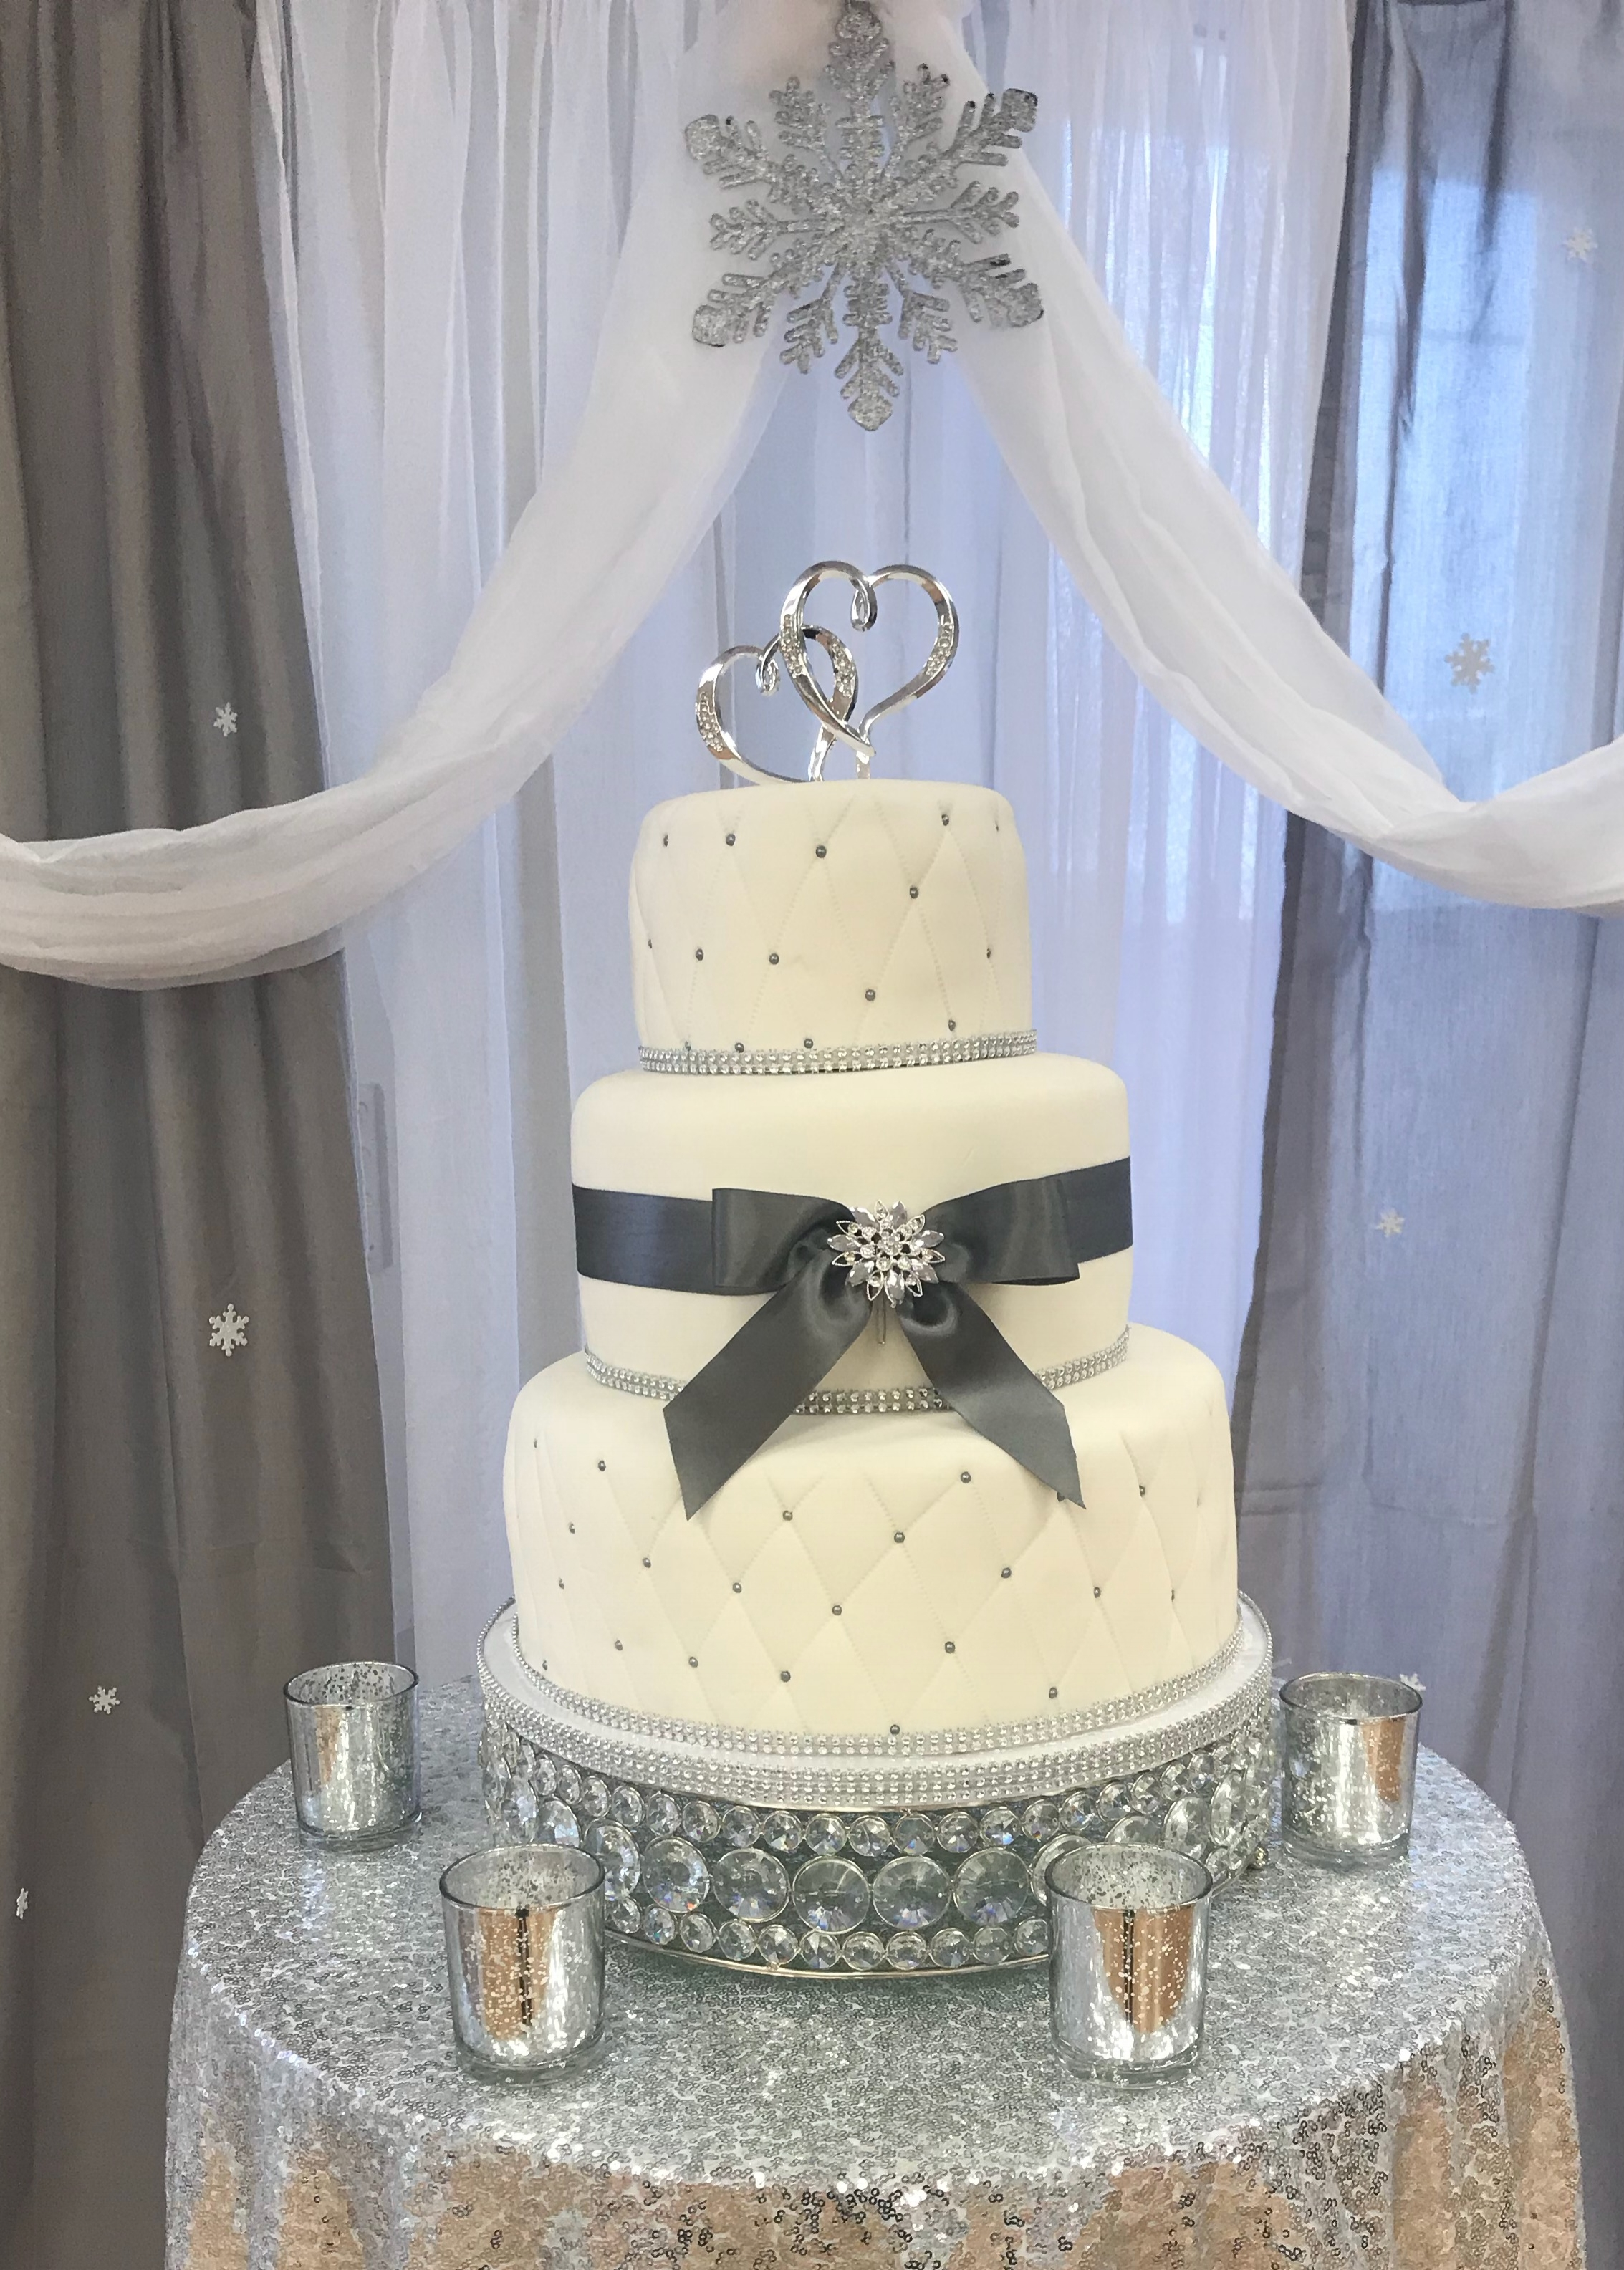 Weddings - Getting married soon? Let our event staff plan or decorate. We work hard to make sure your day is special and beautiful.